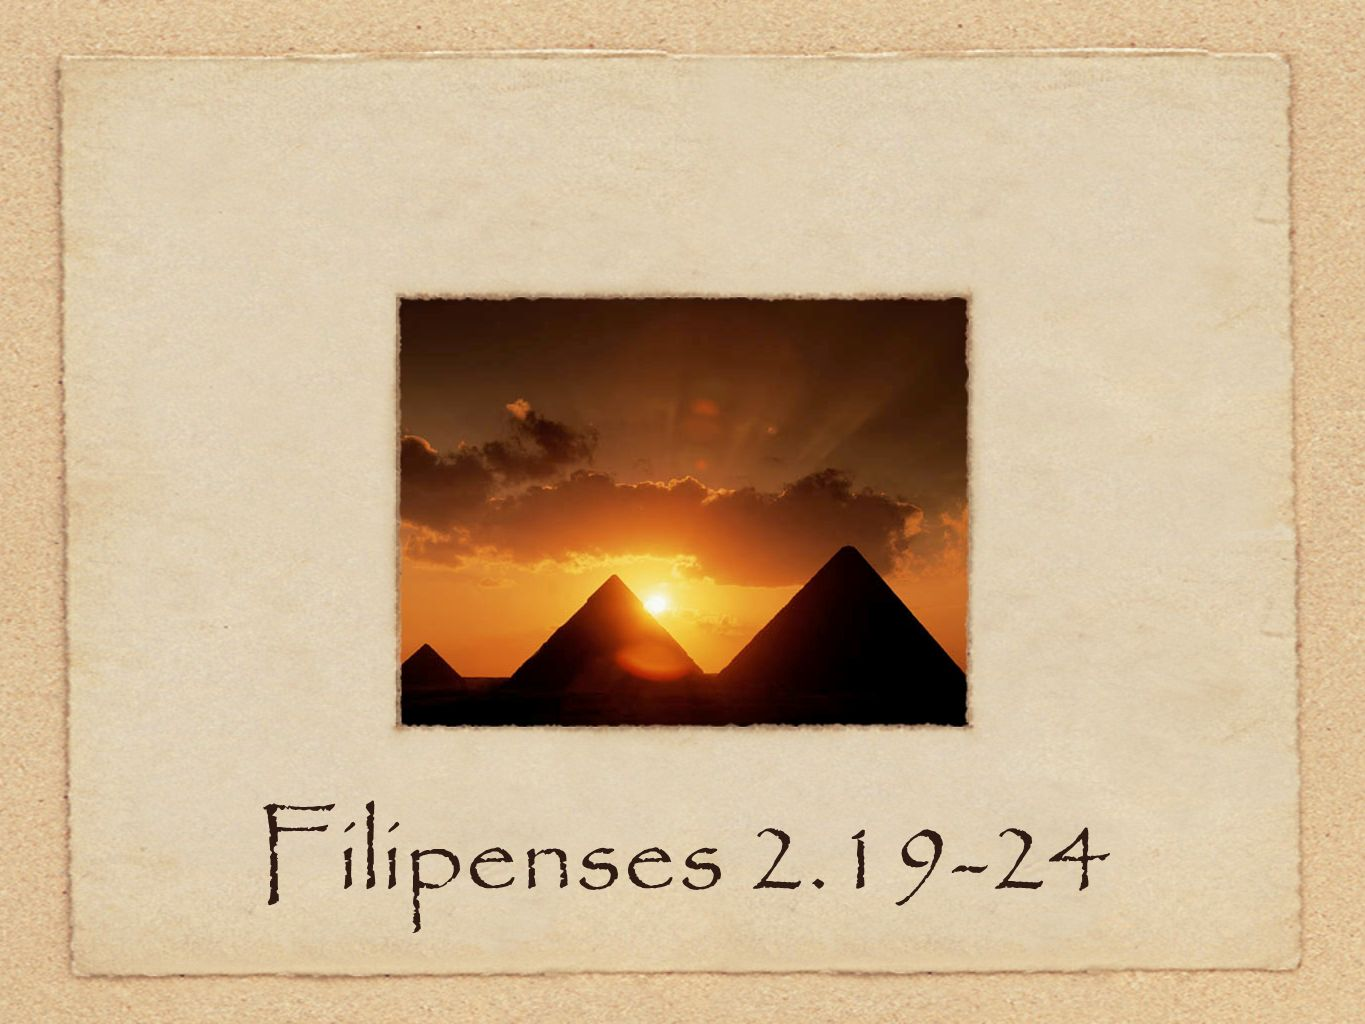 Filipenses 2.19-24